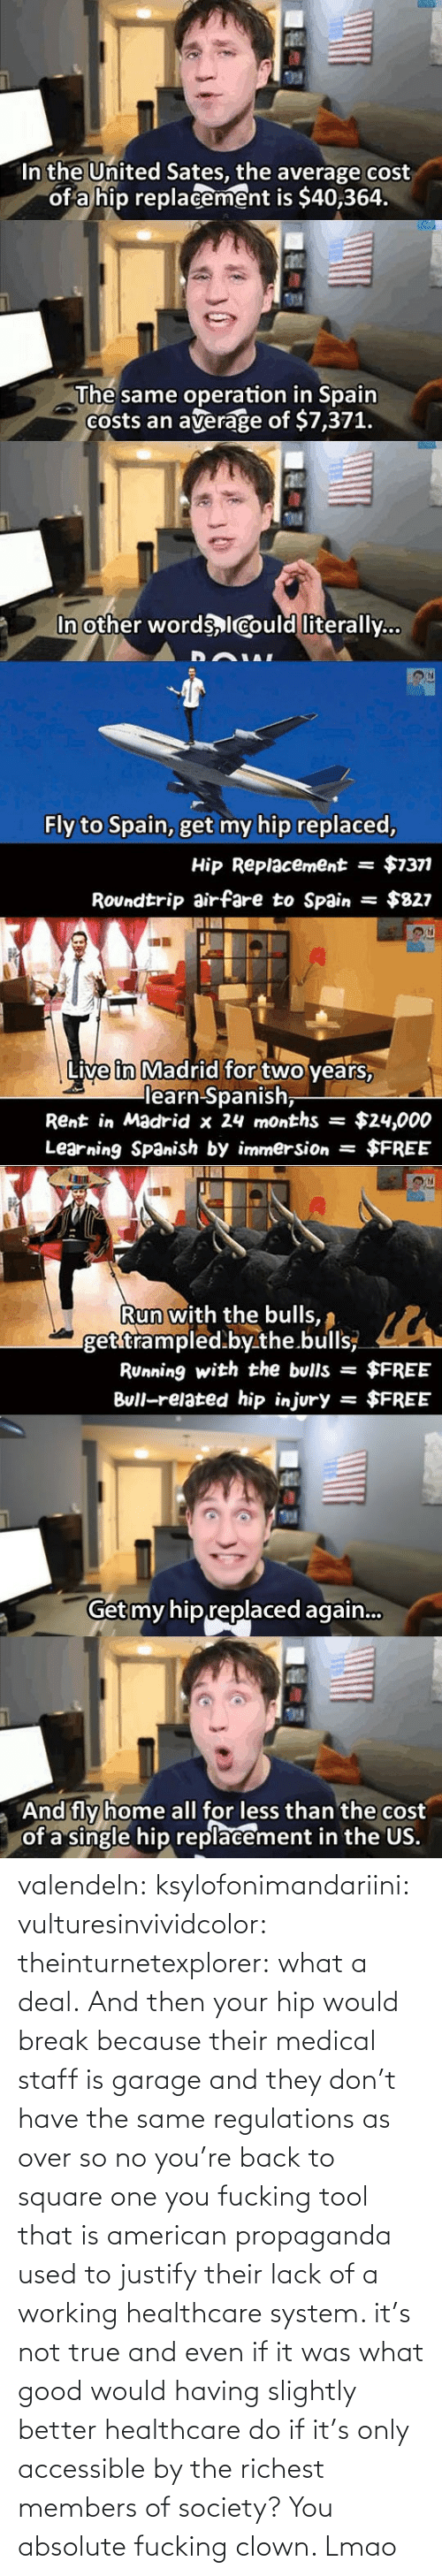 working: valendeln:  ksylofonimandariini:  vulturesinvividcolor:   theinturnetexplorer:  what a deal.   And then your hip would break because their medical staff is garage and they don't have the same regulations as over so no you're back to square one you fucking tool    that is american propaganda used to justify their lack of a working healthcare system. it's not true and even if it was what good would having slightly better healthcare do if it's only accessible by the richest members of society?      You absolute fucking clown. Lmao